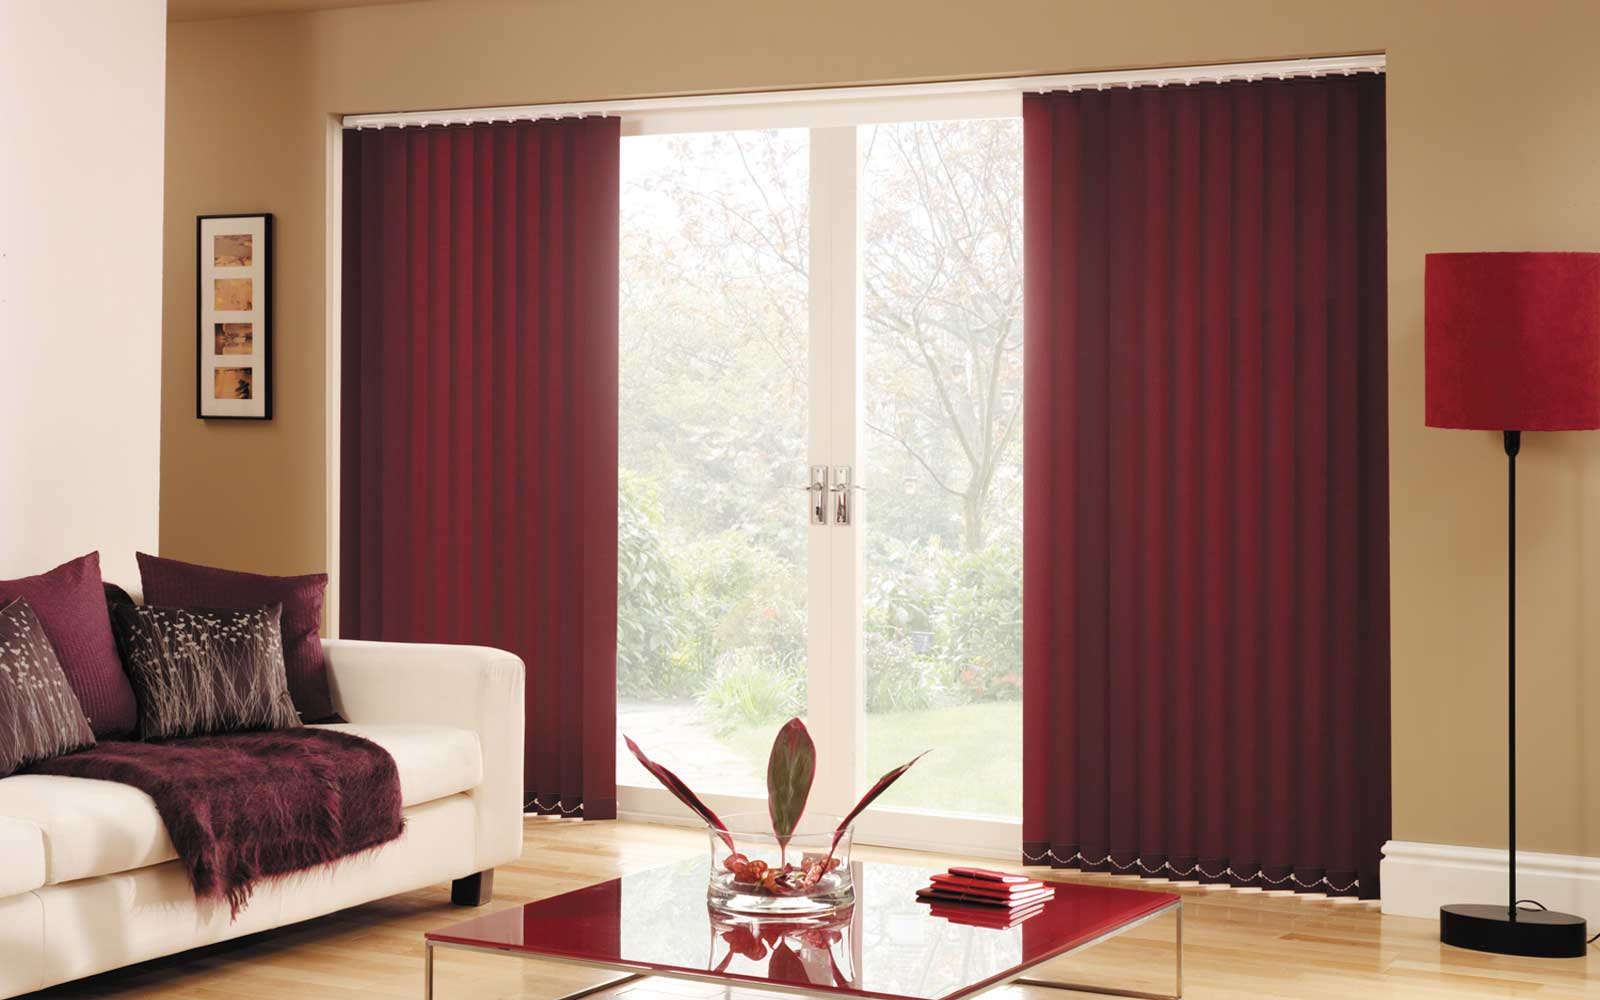 3 For 2 Vertical Blinds Surrey amp Shutters